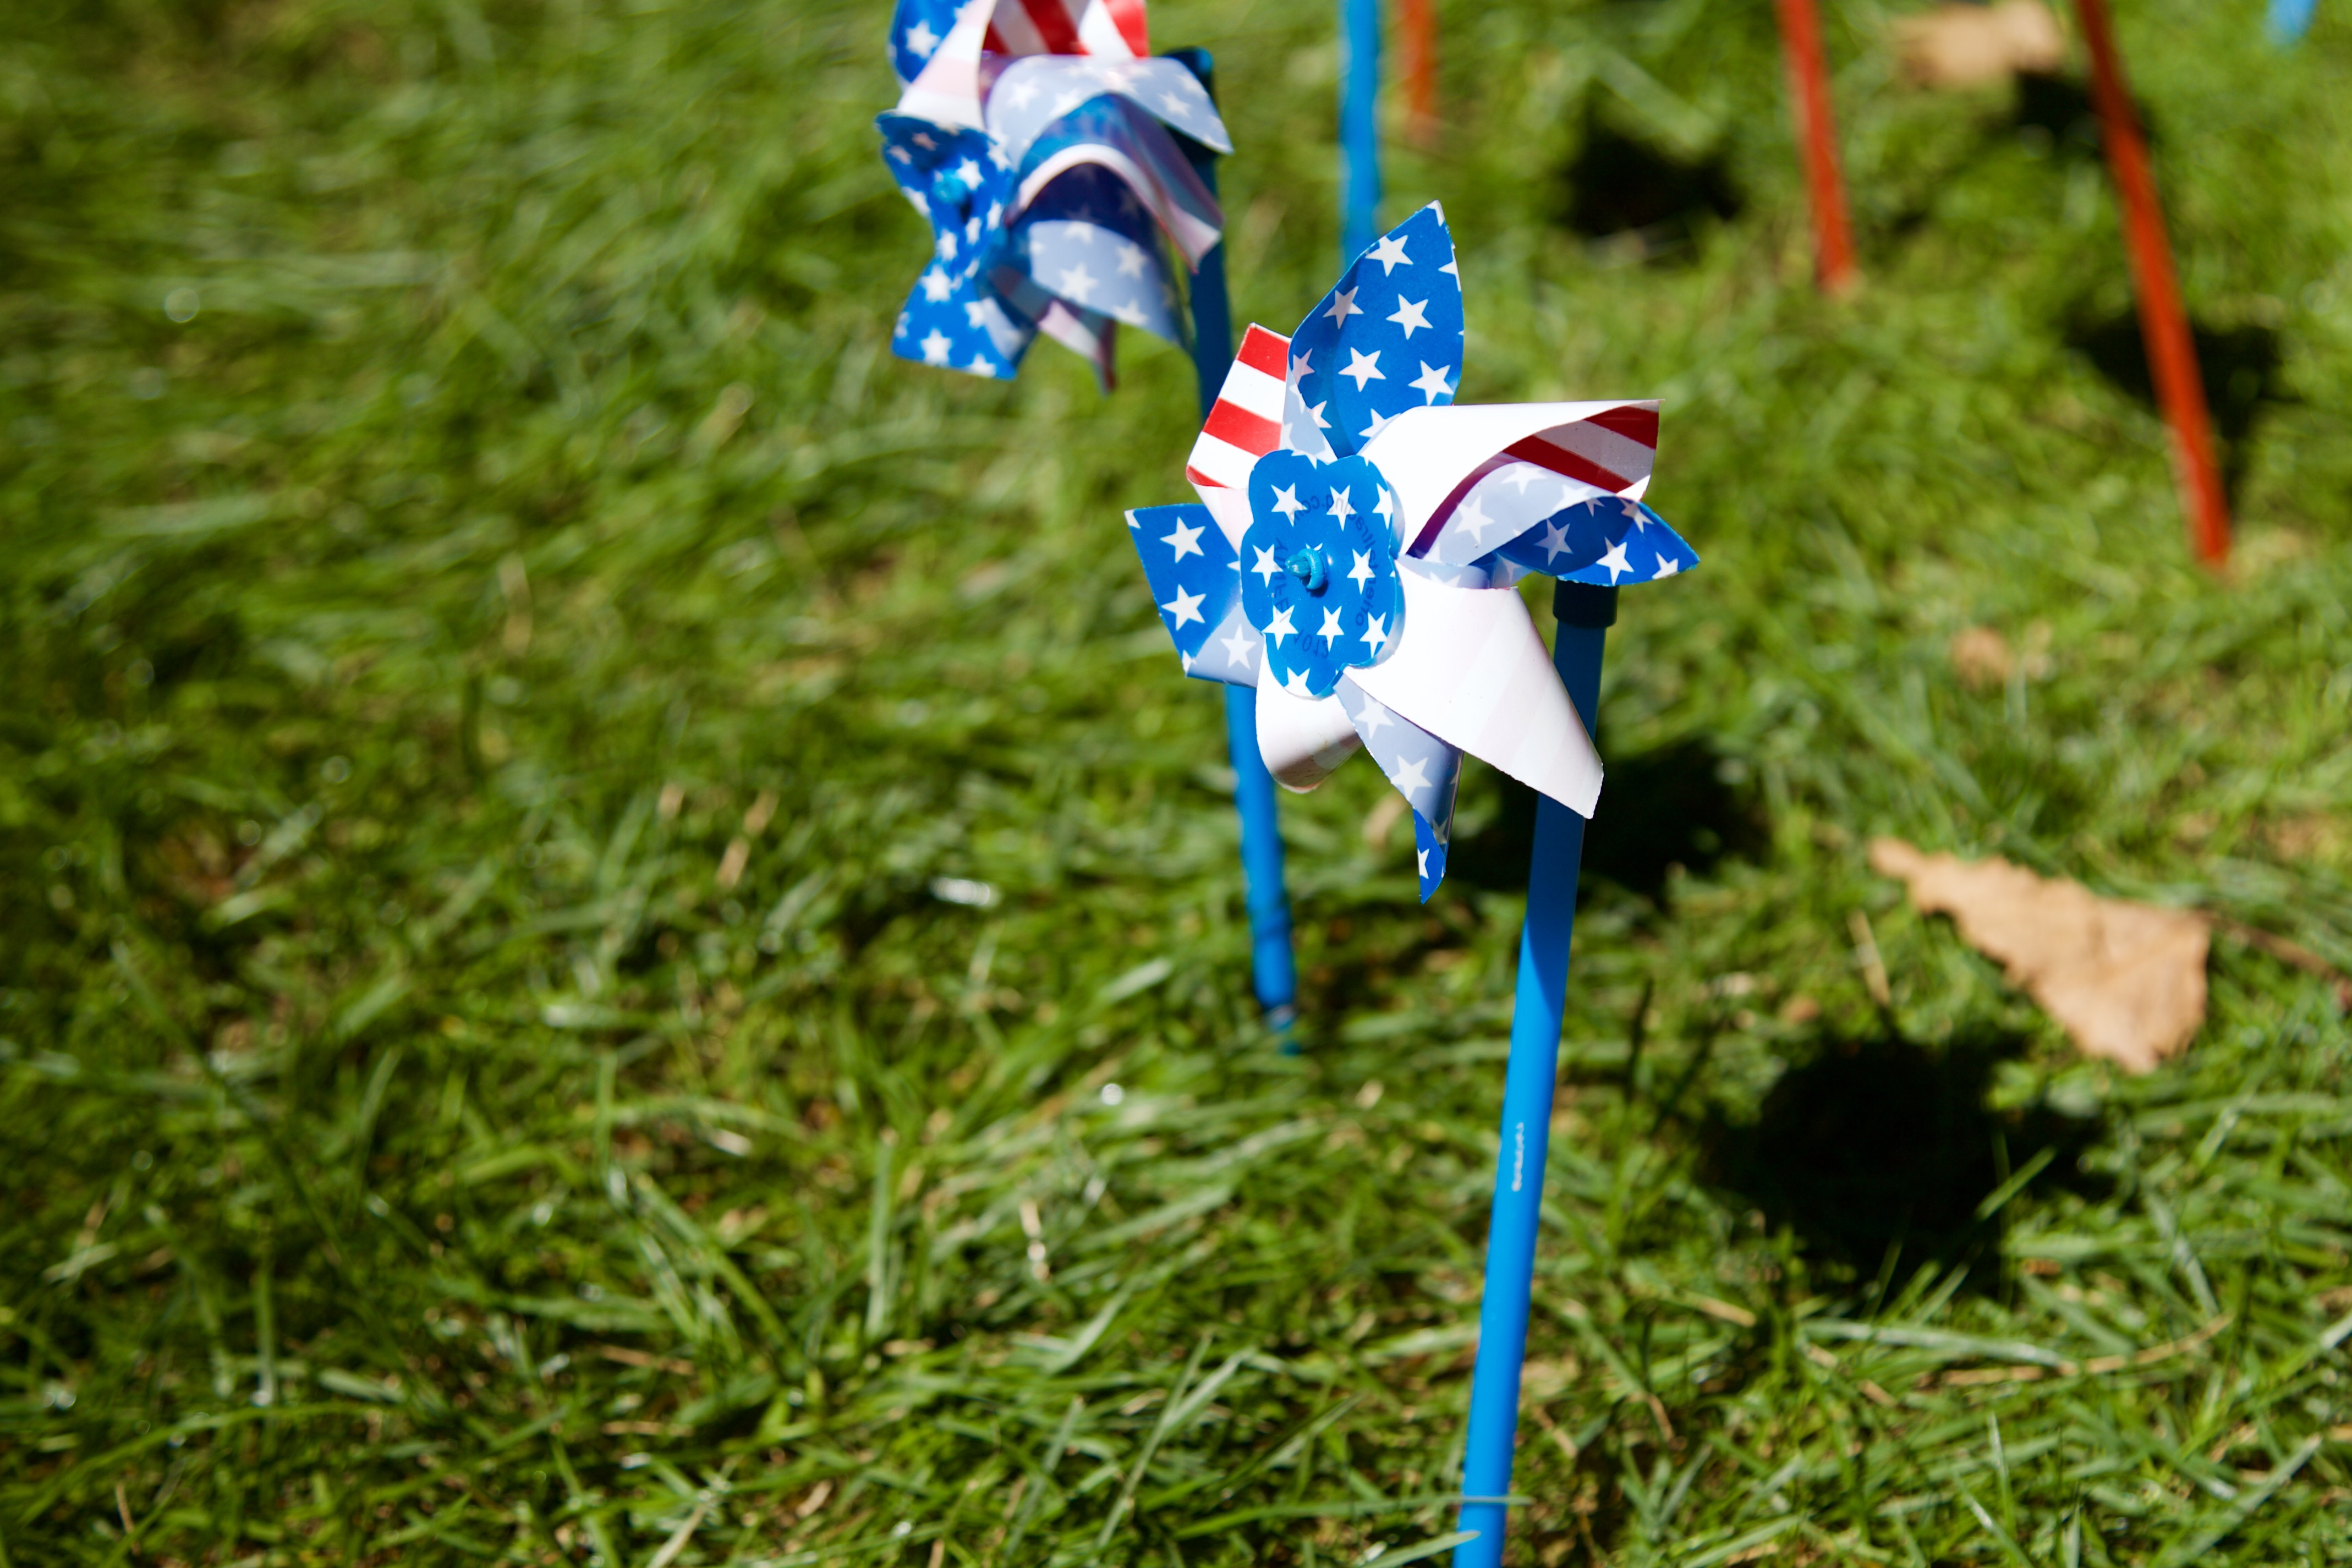 Each year, hundreds of these pinwheels are placed into the grass outside of the SAC. ARACELY JIMENEZ/THE STATESMAN